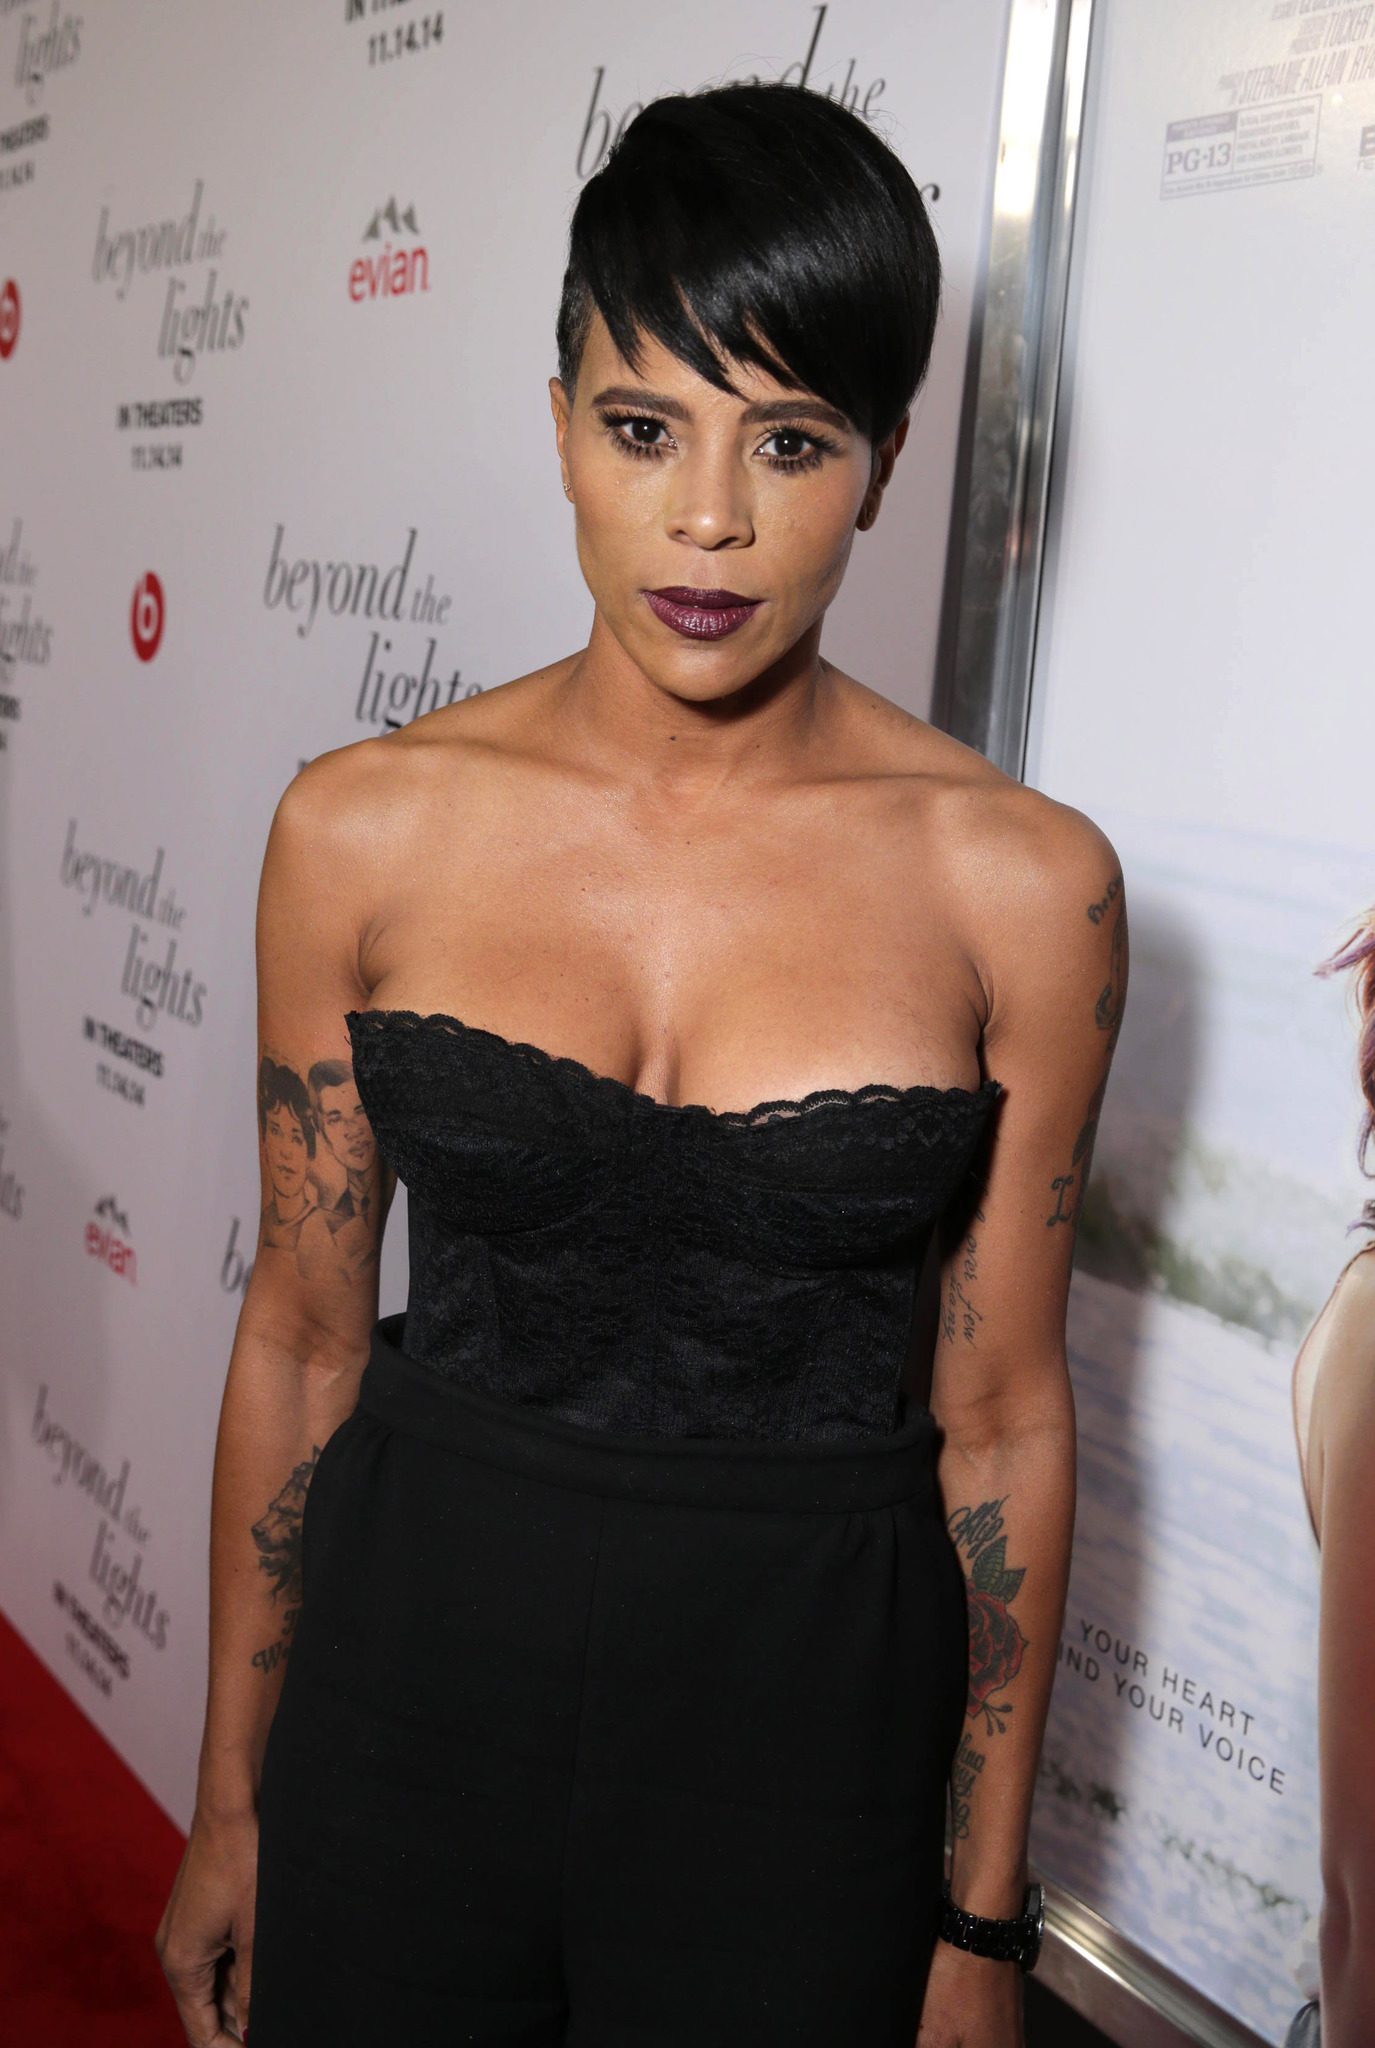 Laurieann Gibson at an event for Beyond the Lights (2014)